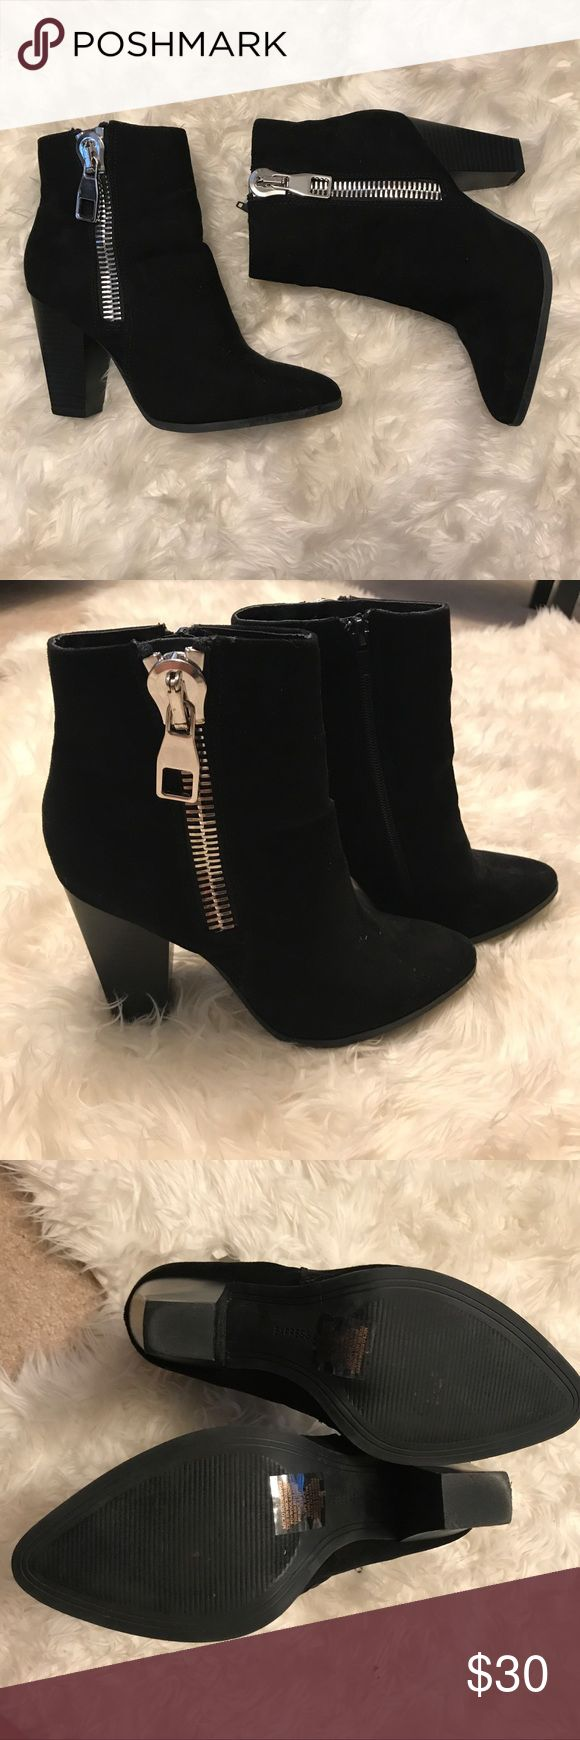 """Black Express Boots Black boots with large silver side zipper. Around a 3.5"""" heel. Size 7. Small scuff marks on the inside of right shoe (as pictured).  Zipper on inside shoe. Express Shoes Heeled Boots"""